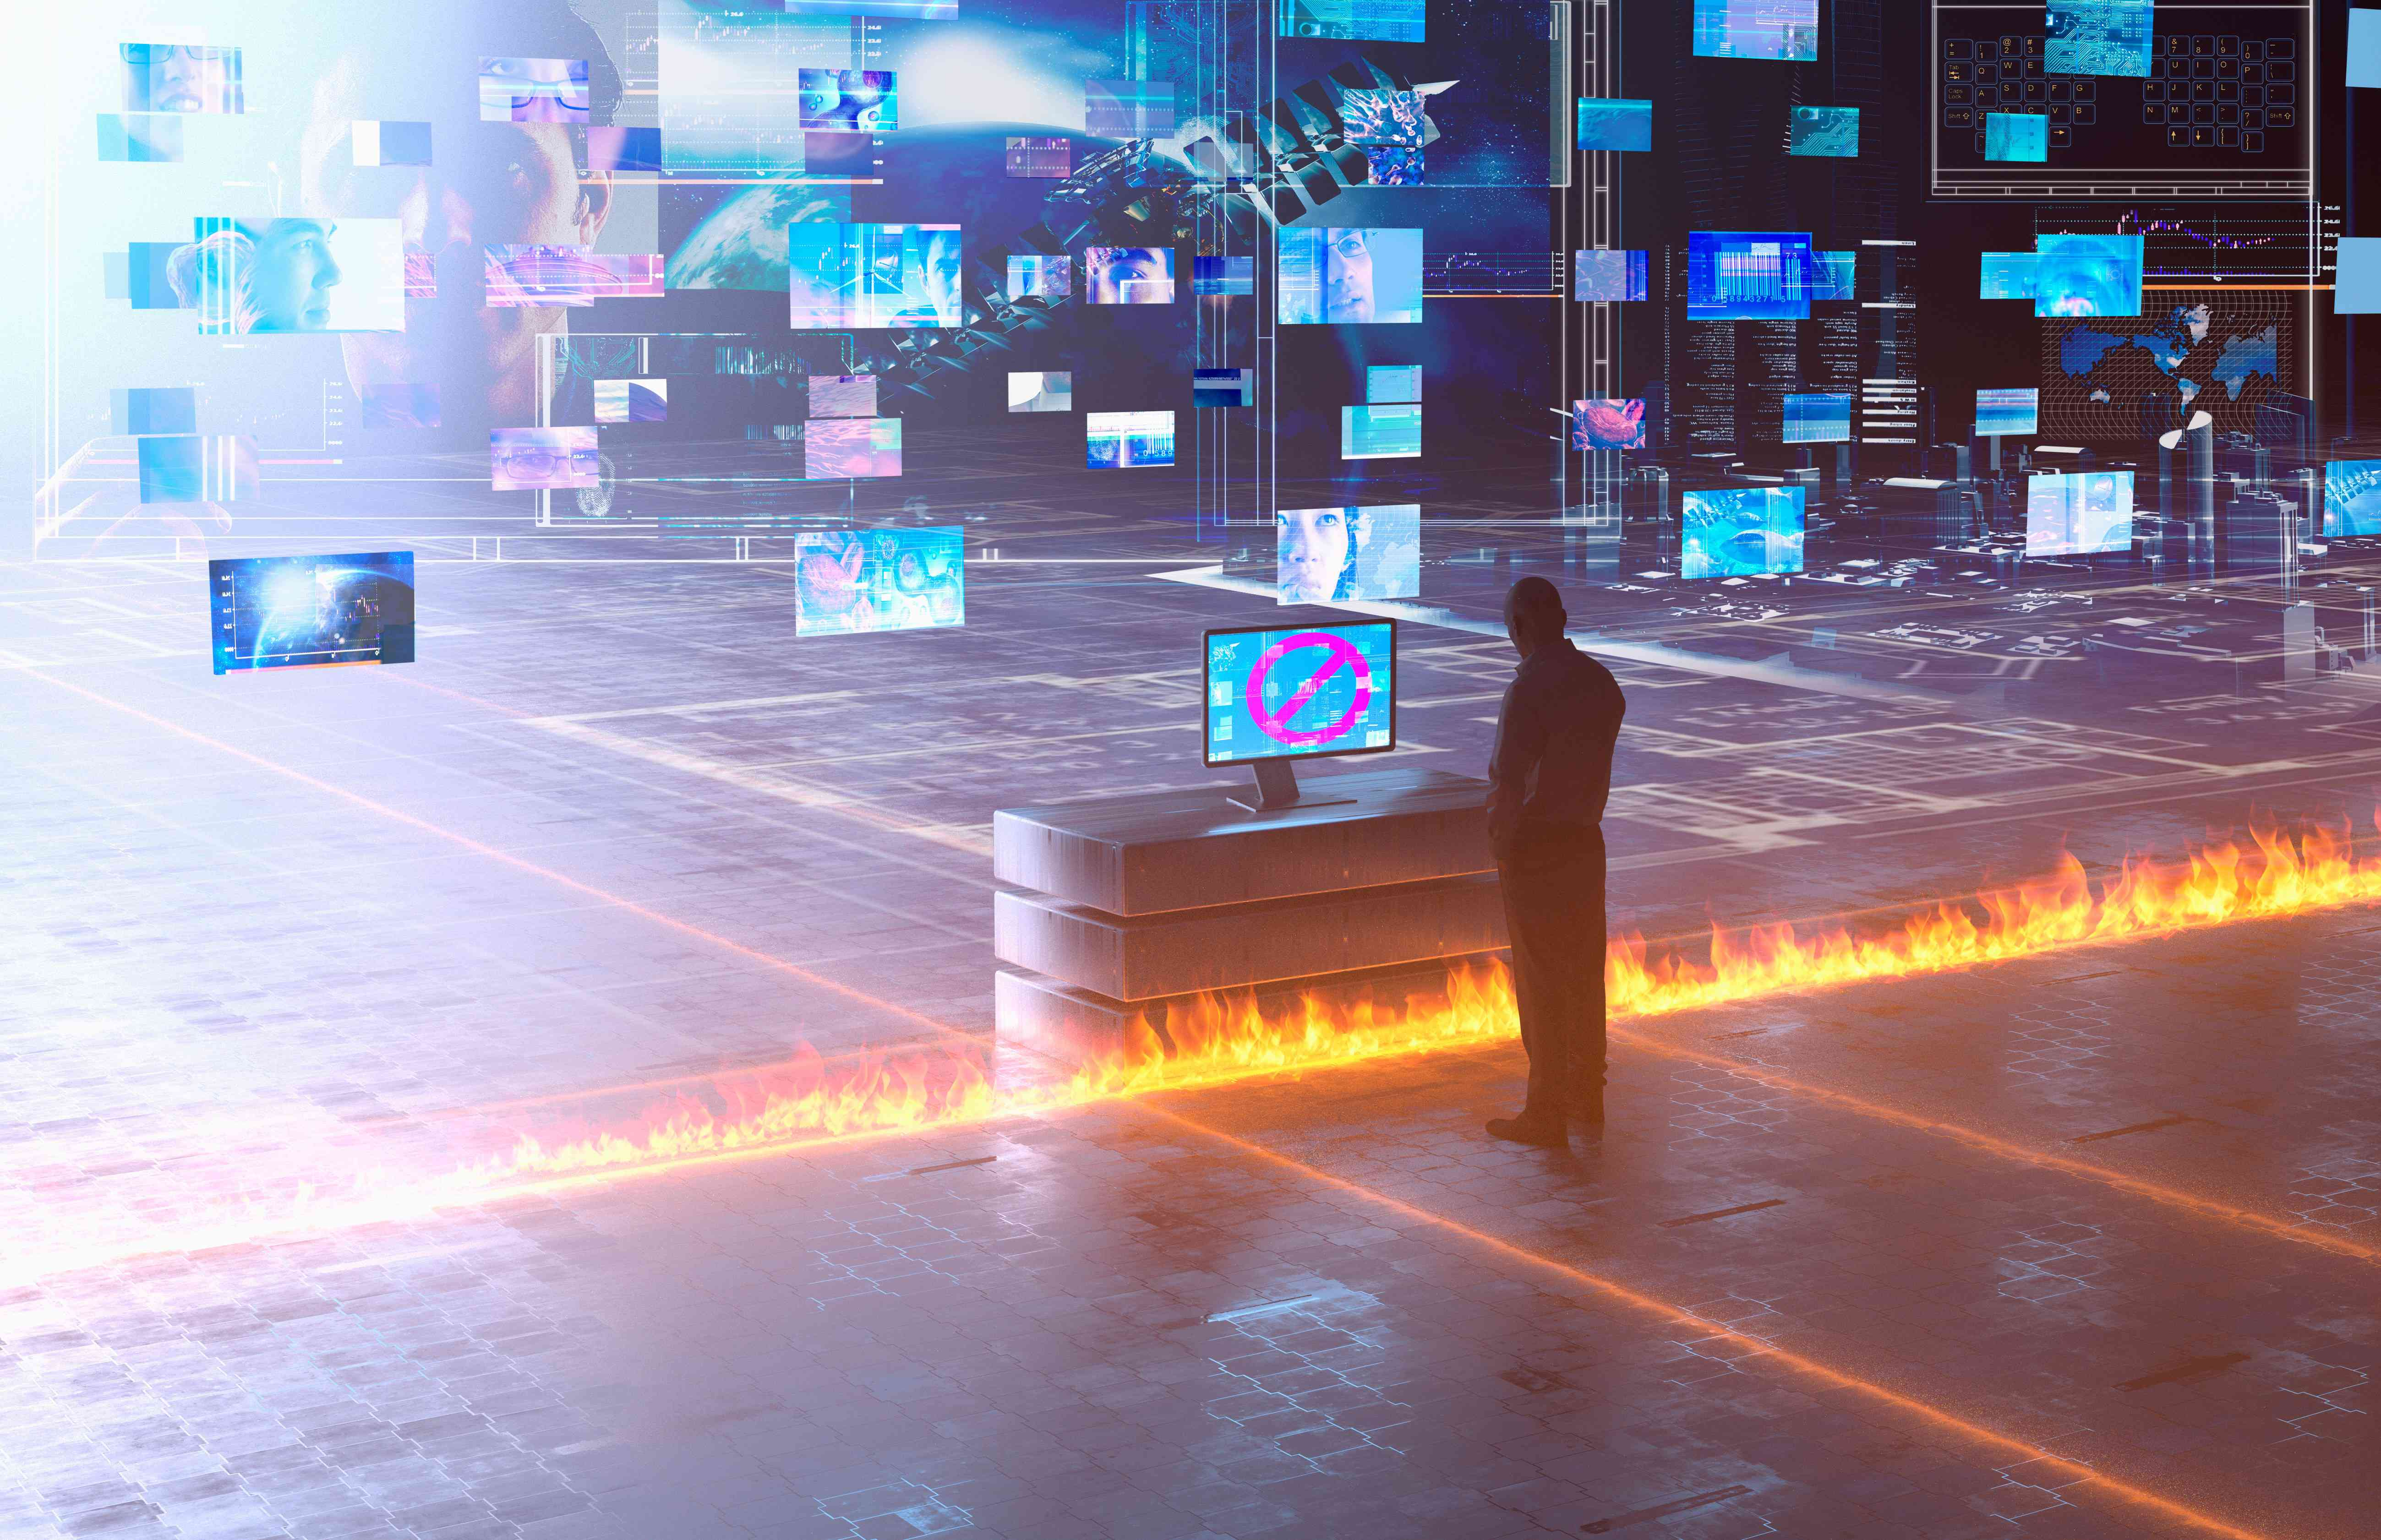 Person standing in front of several computer monitors with a fire between them.